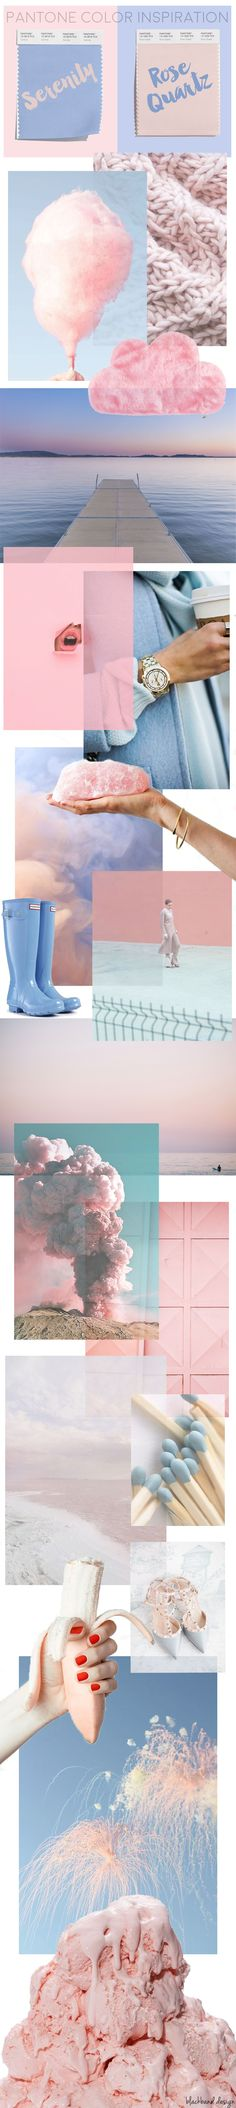 ROSE QUARTZ AND SERENITY One of the biggest trends we hope to see in 2016 is the use of more color! Colour Pallette, Colour Schemes, Color Combinations, Rose Quartz Serenity, Branding Design, Logo Design, Design Color, Pantone Color, Pantone 2016